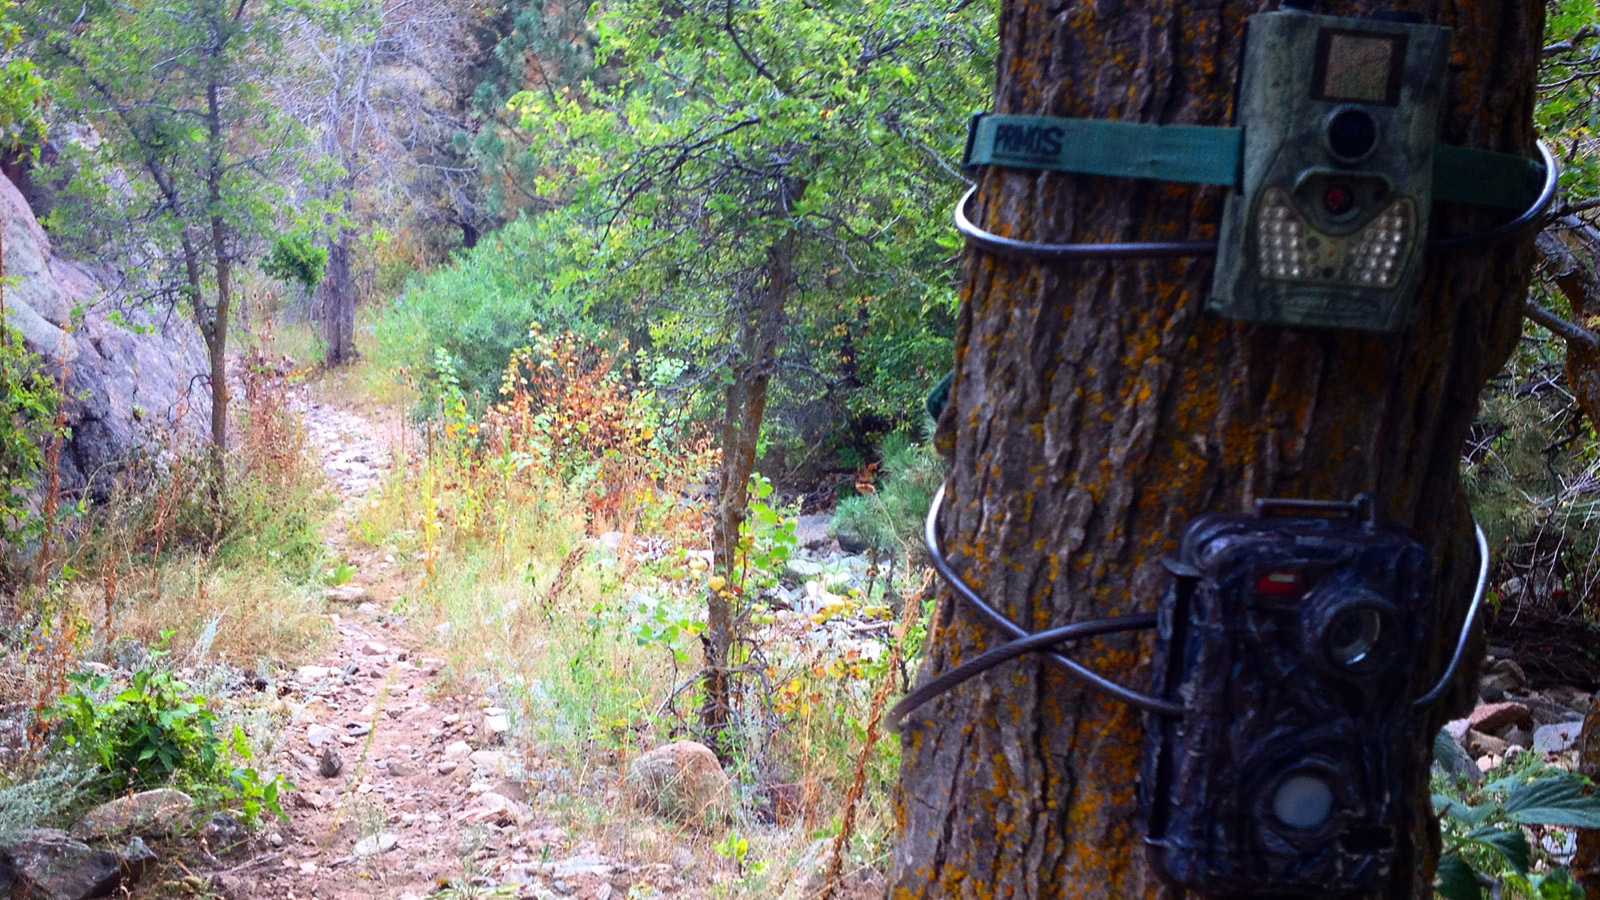 camouflaged wildlife camera mounted to tree (credit: CBS)